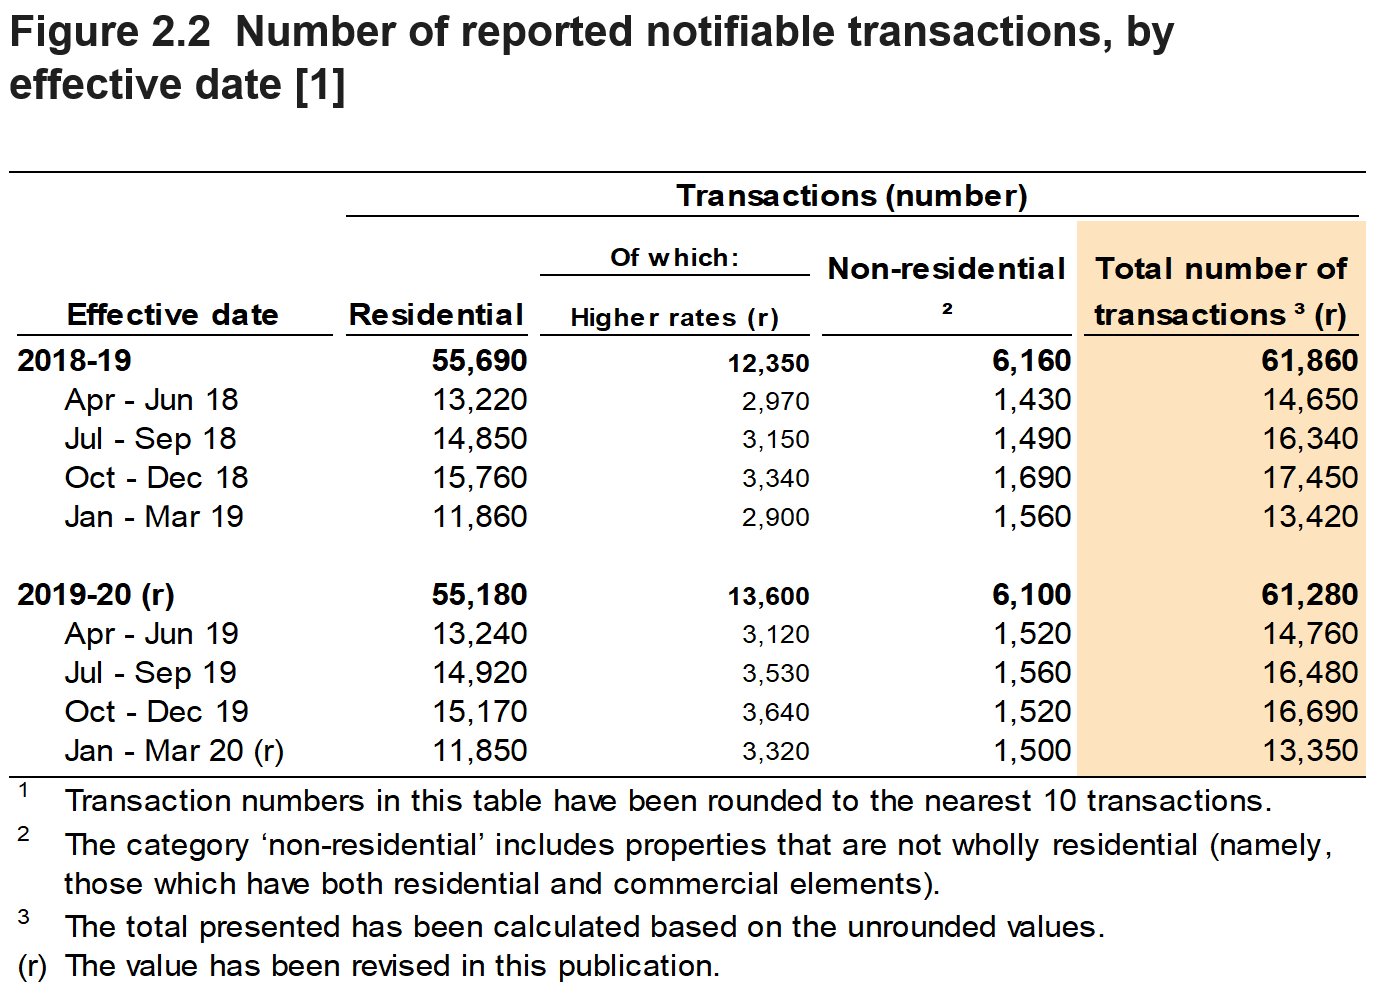 Figure 2.2 shows the number of reported notifiable transactions, by the quarter and year in which they were effective. Figure 2.2 also shows a breakdown for residential and non-residential transactions.